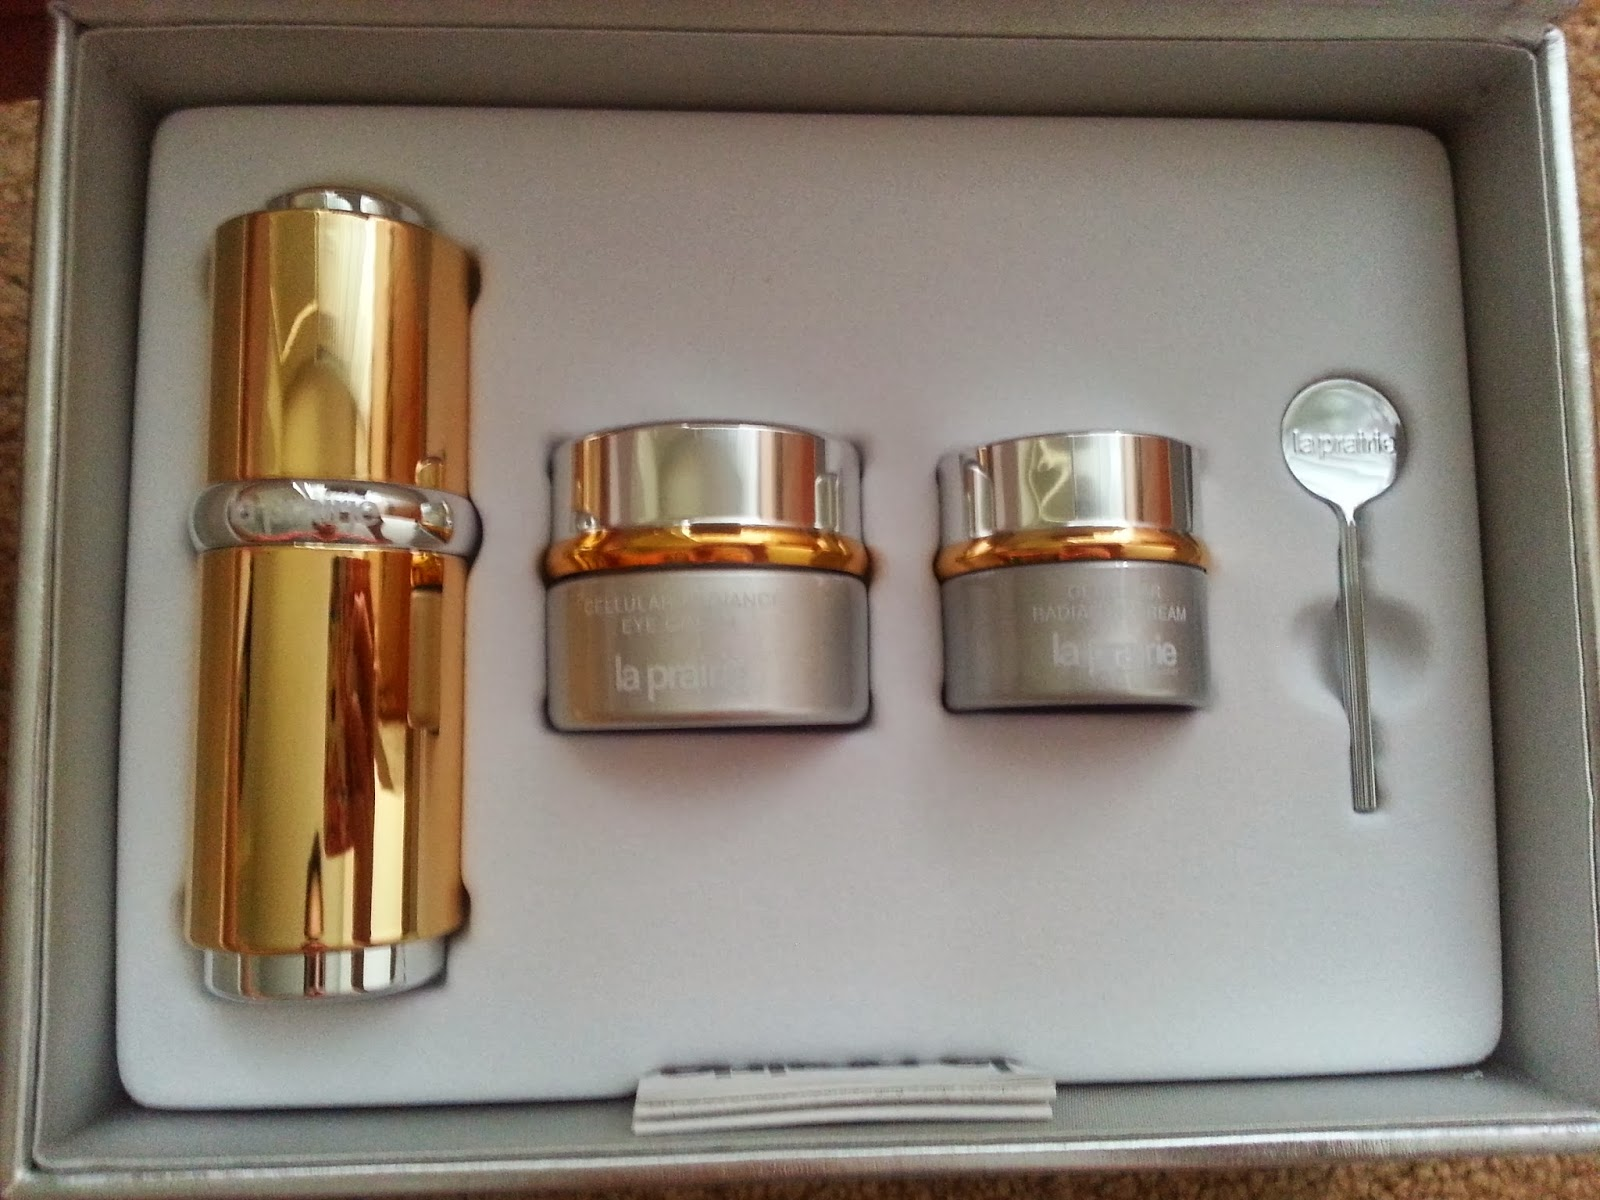 La Prairie Cellular Gold Radiance